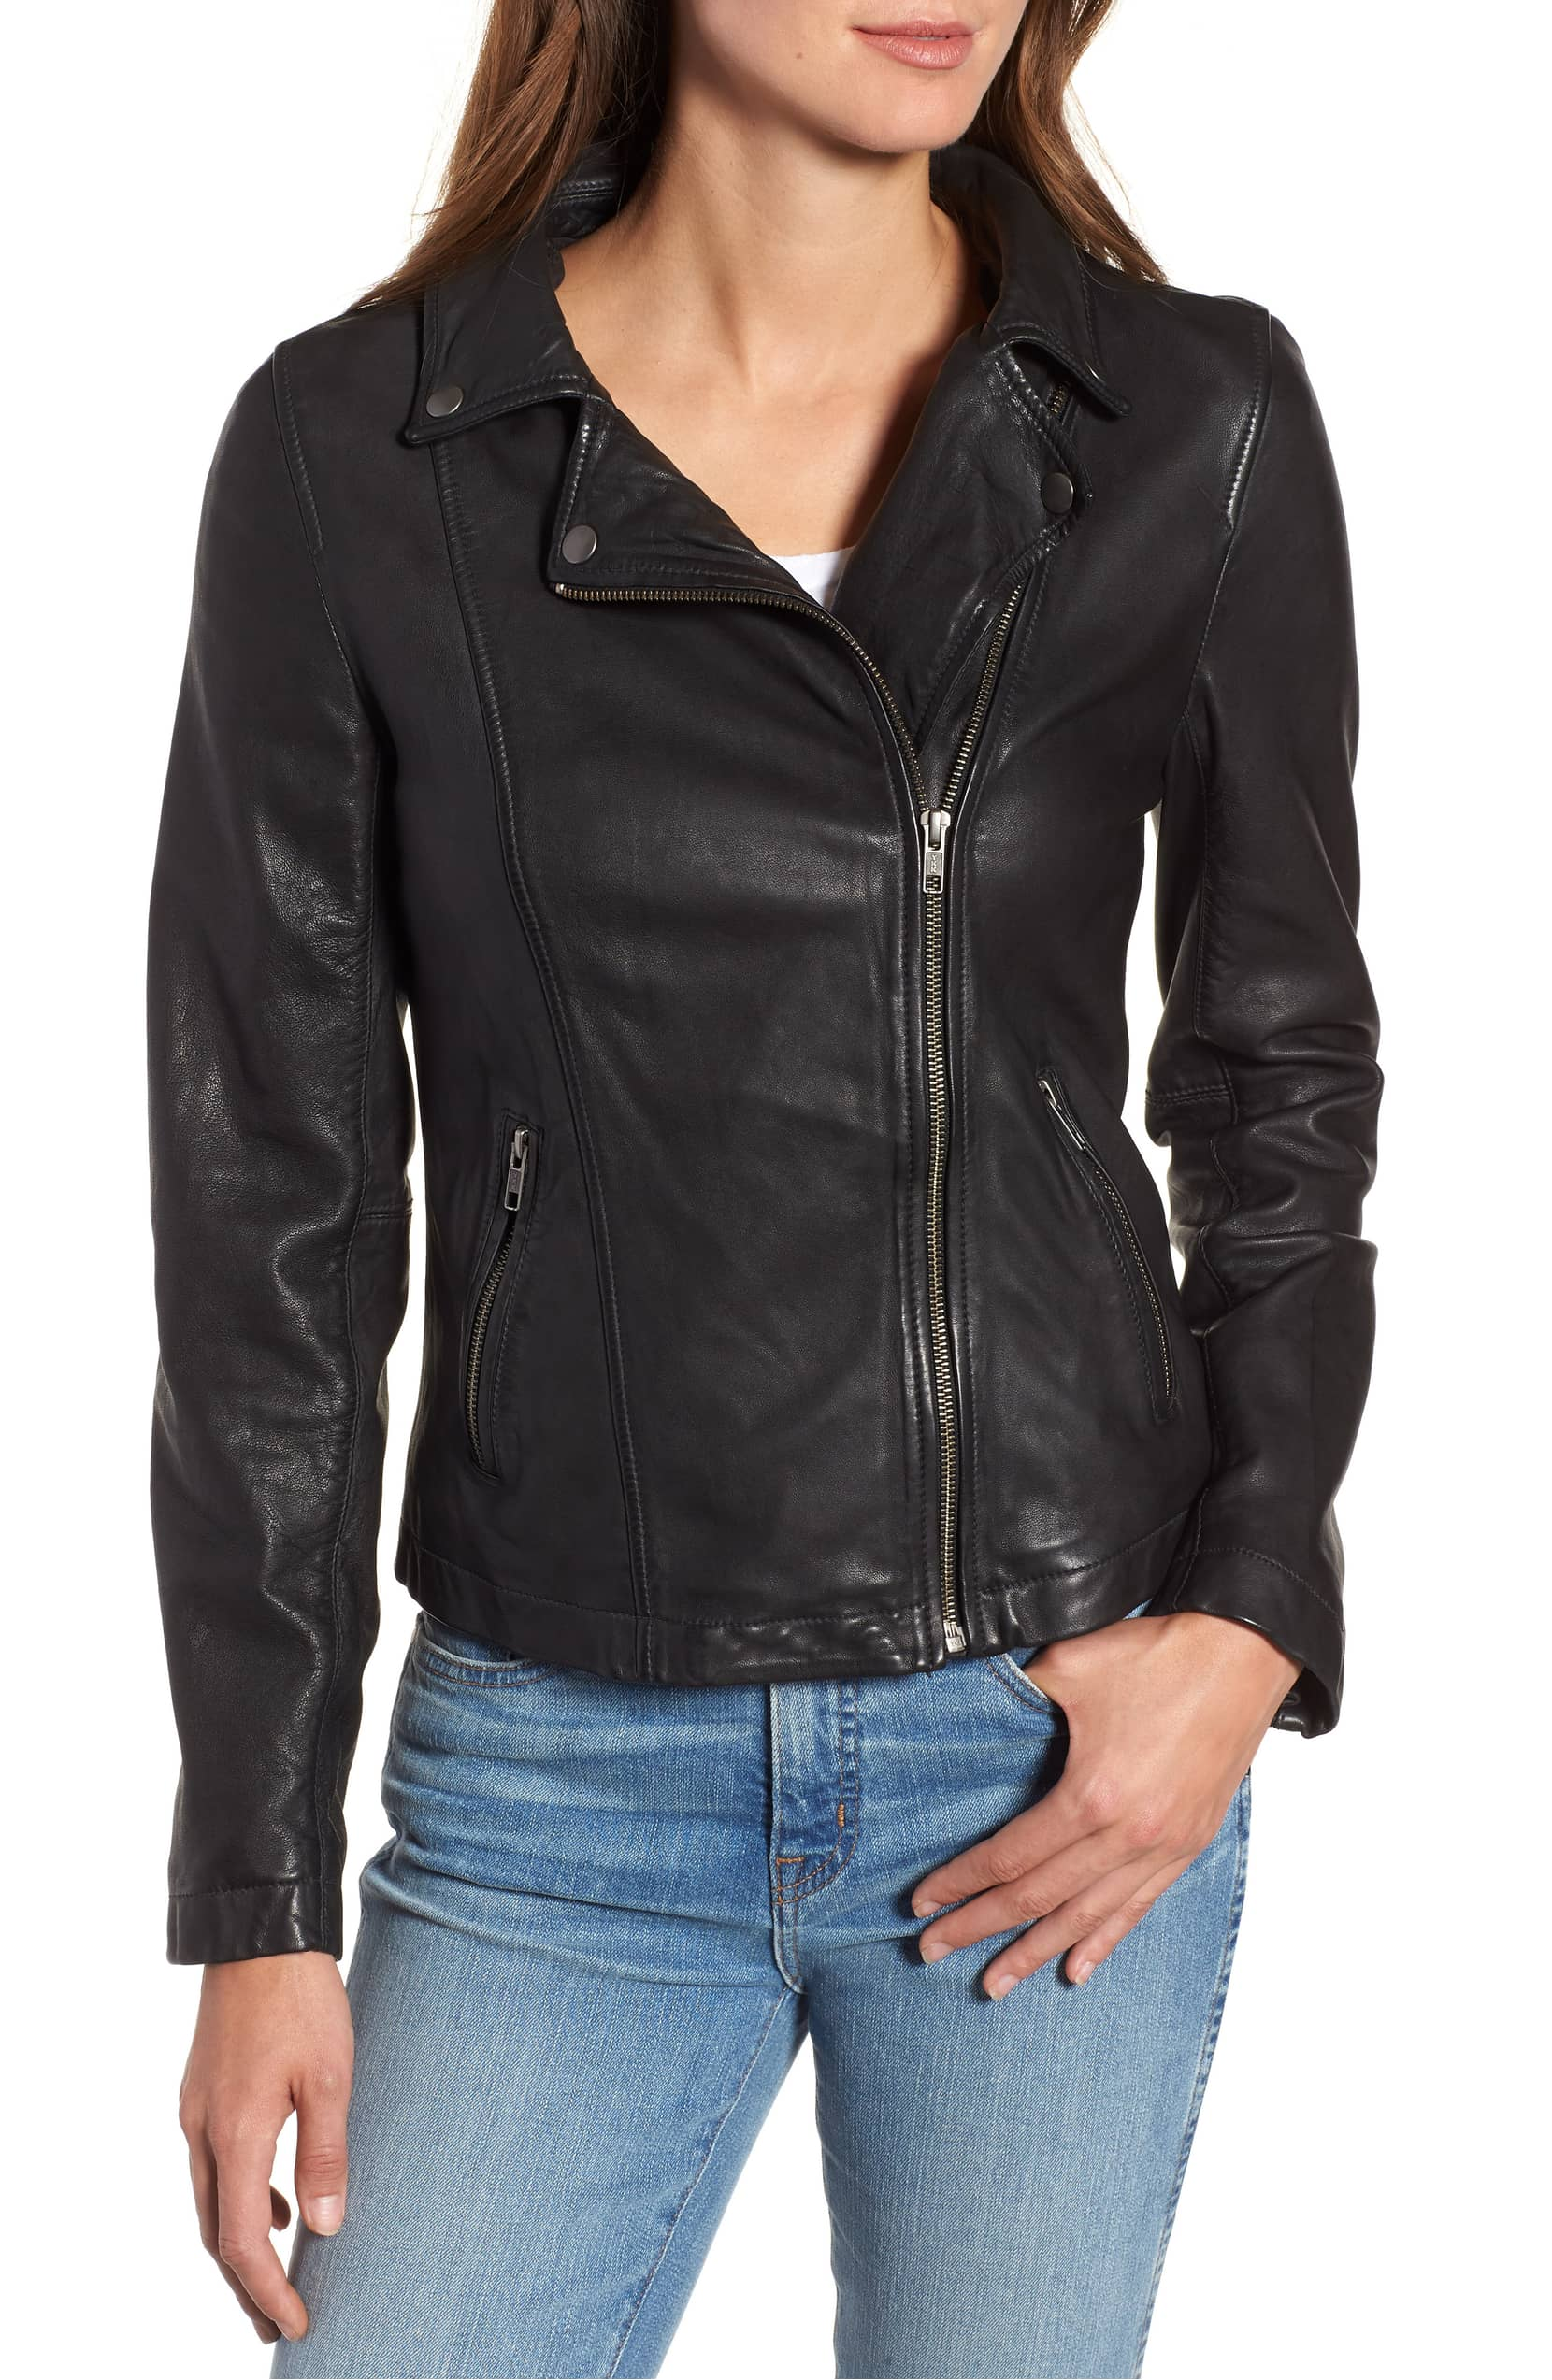 caslon leather jacket with hood inset removed